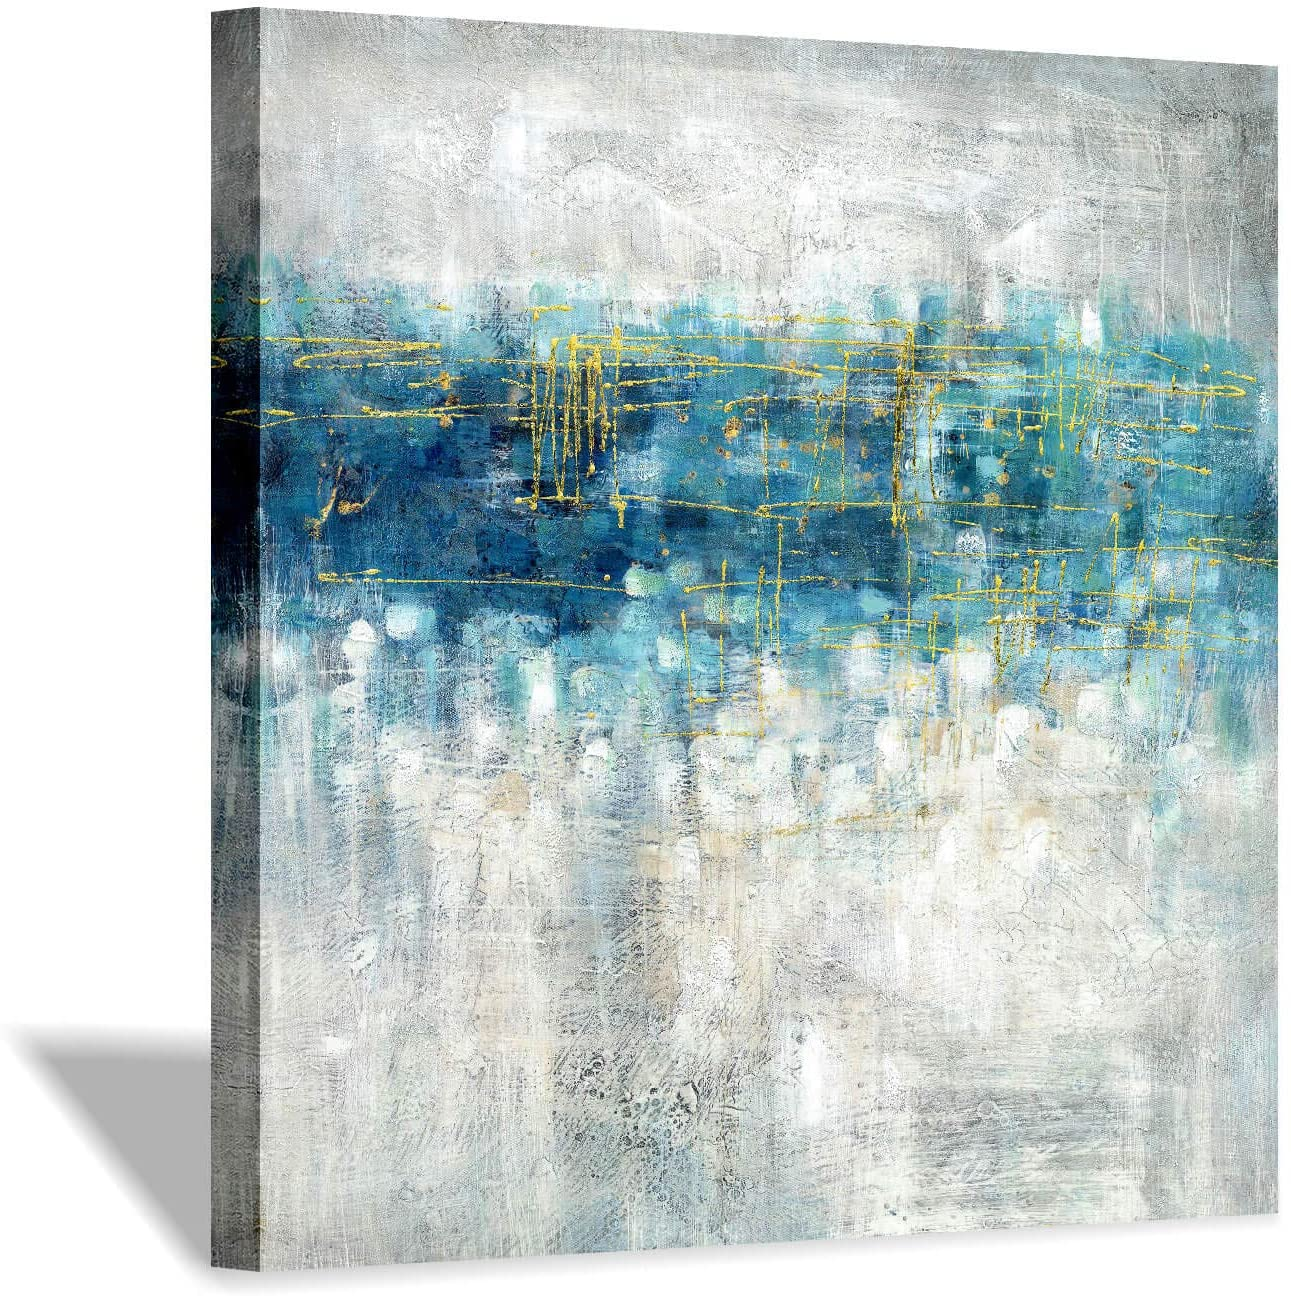 Abstract Modern Canvas Wall Art: Blue and Gray Picture on Canvas for Office (24 x 24 x 1 Panel)